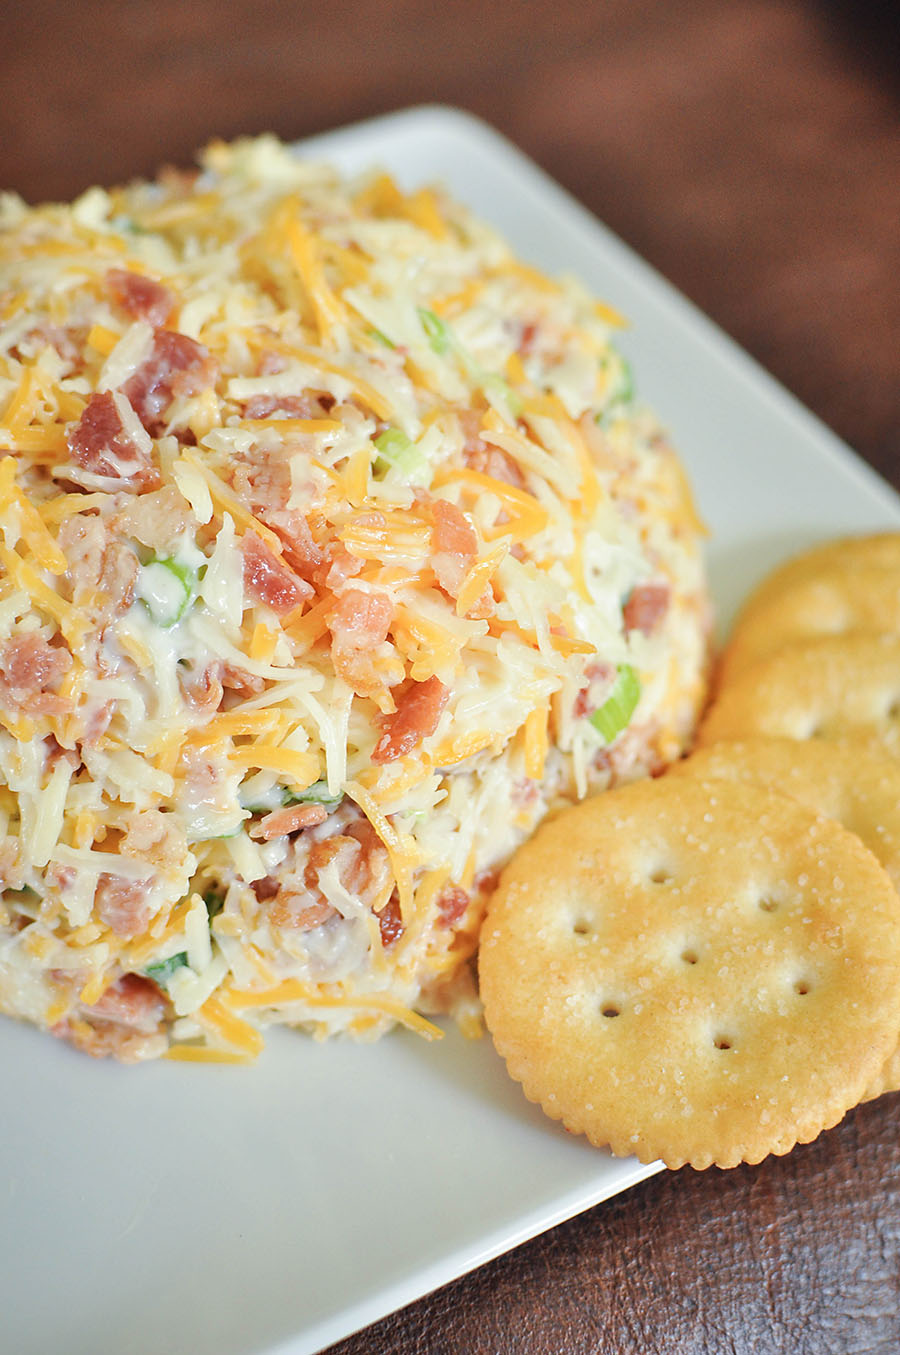 Easy Bacon Cheeseball Recipe - Wit & Wander